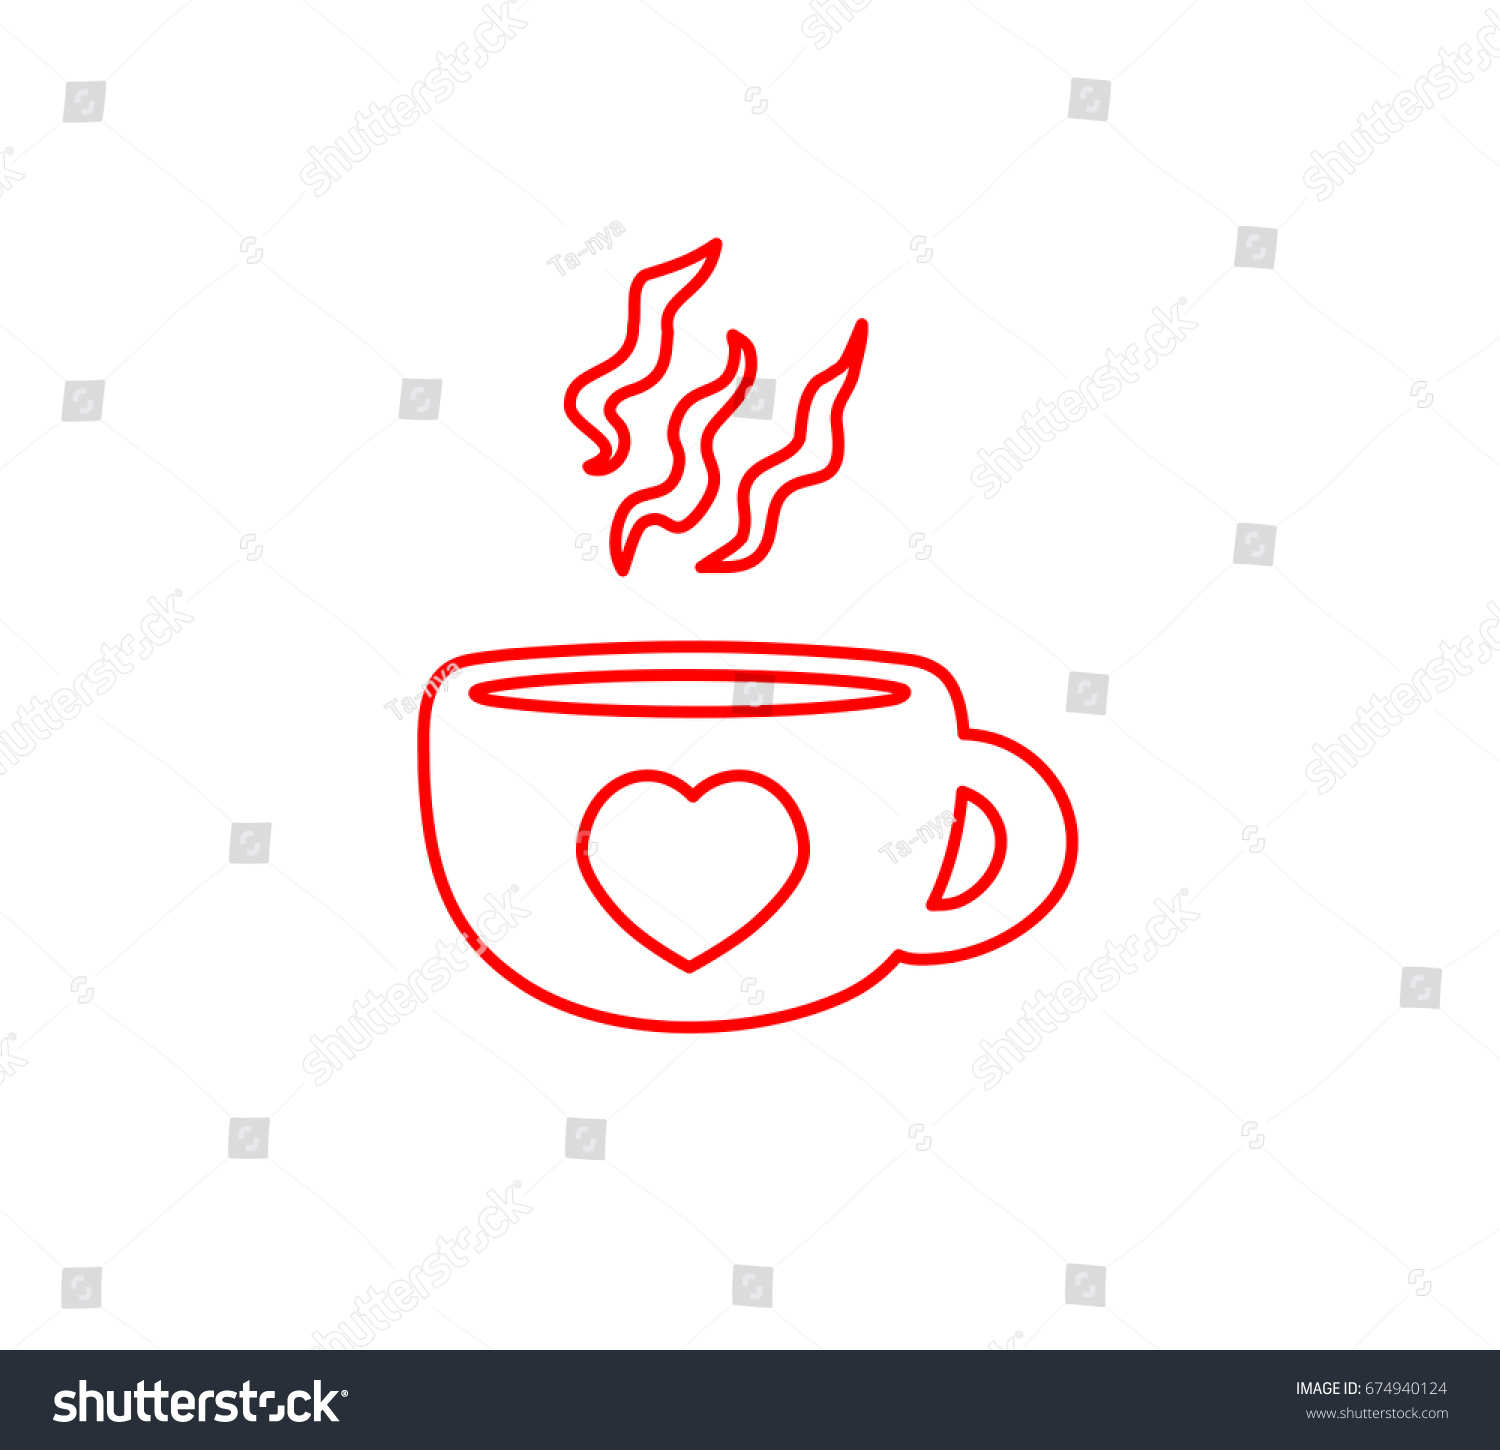 Beautiful simplistic hand drawn sign coffee stock vector 674940124 beautiful simplistic hand drawn sign of a coffee cup with fresh aroma heart pictogram biocorpaavc